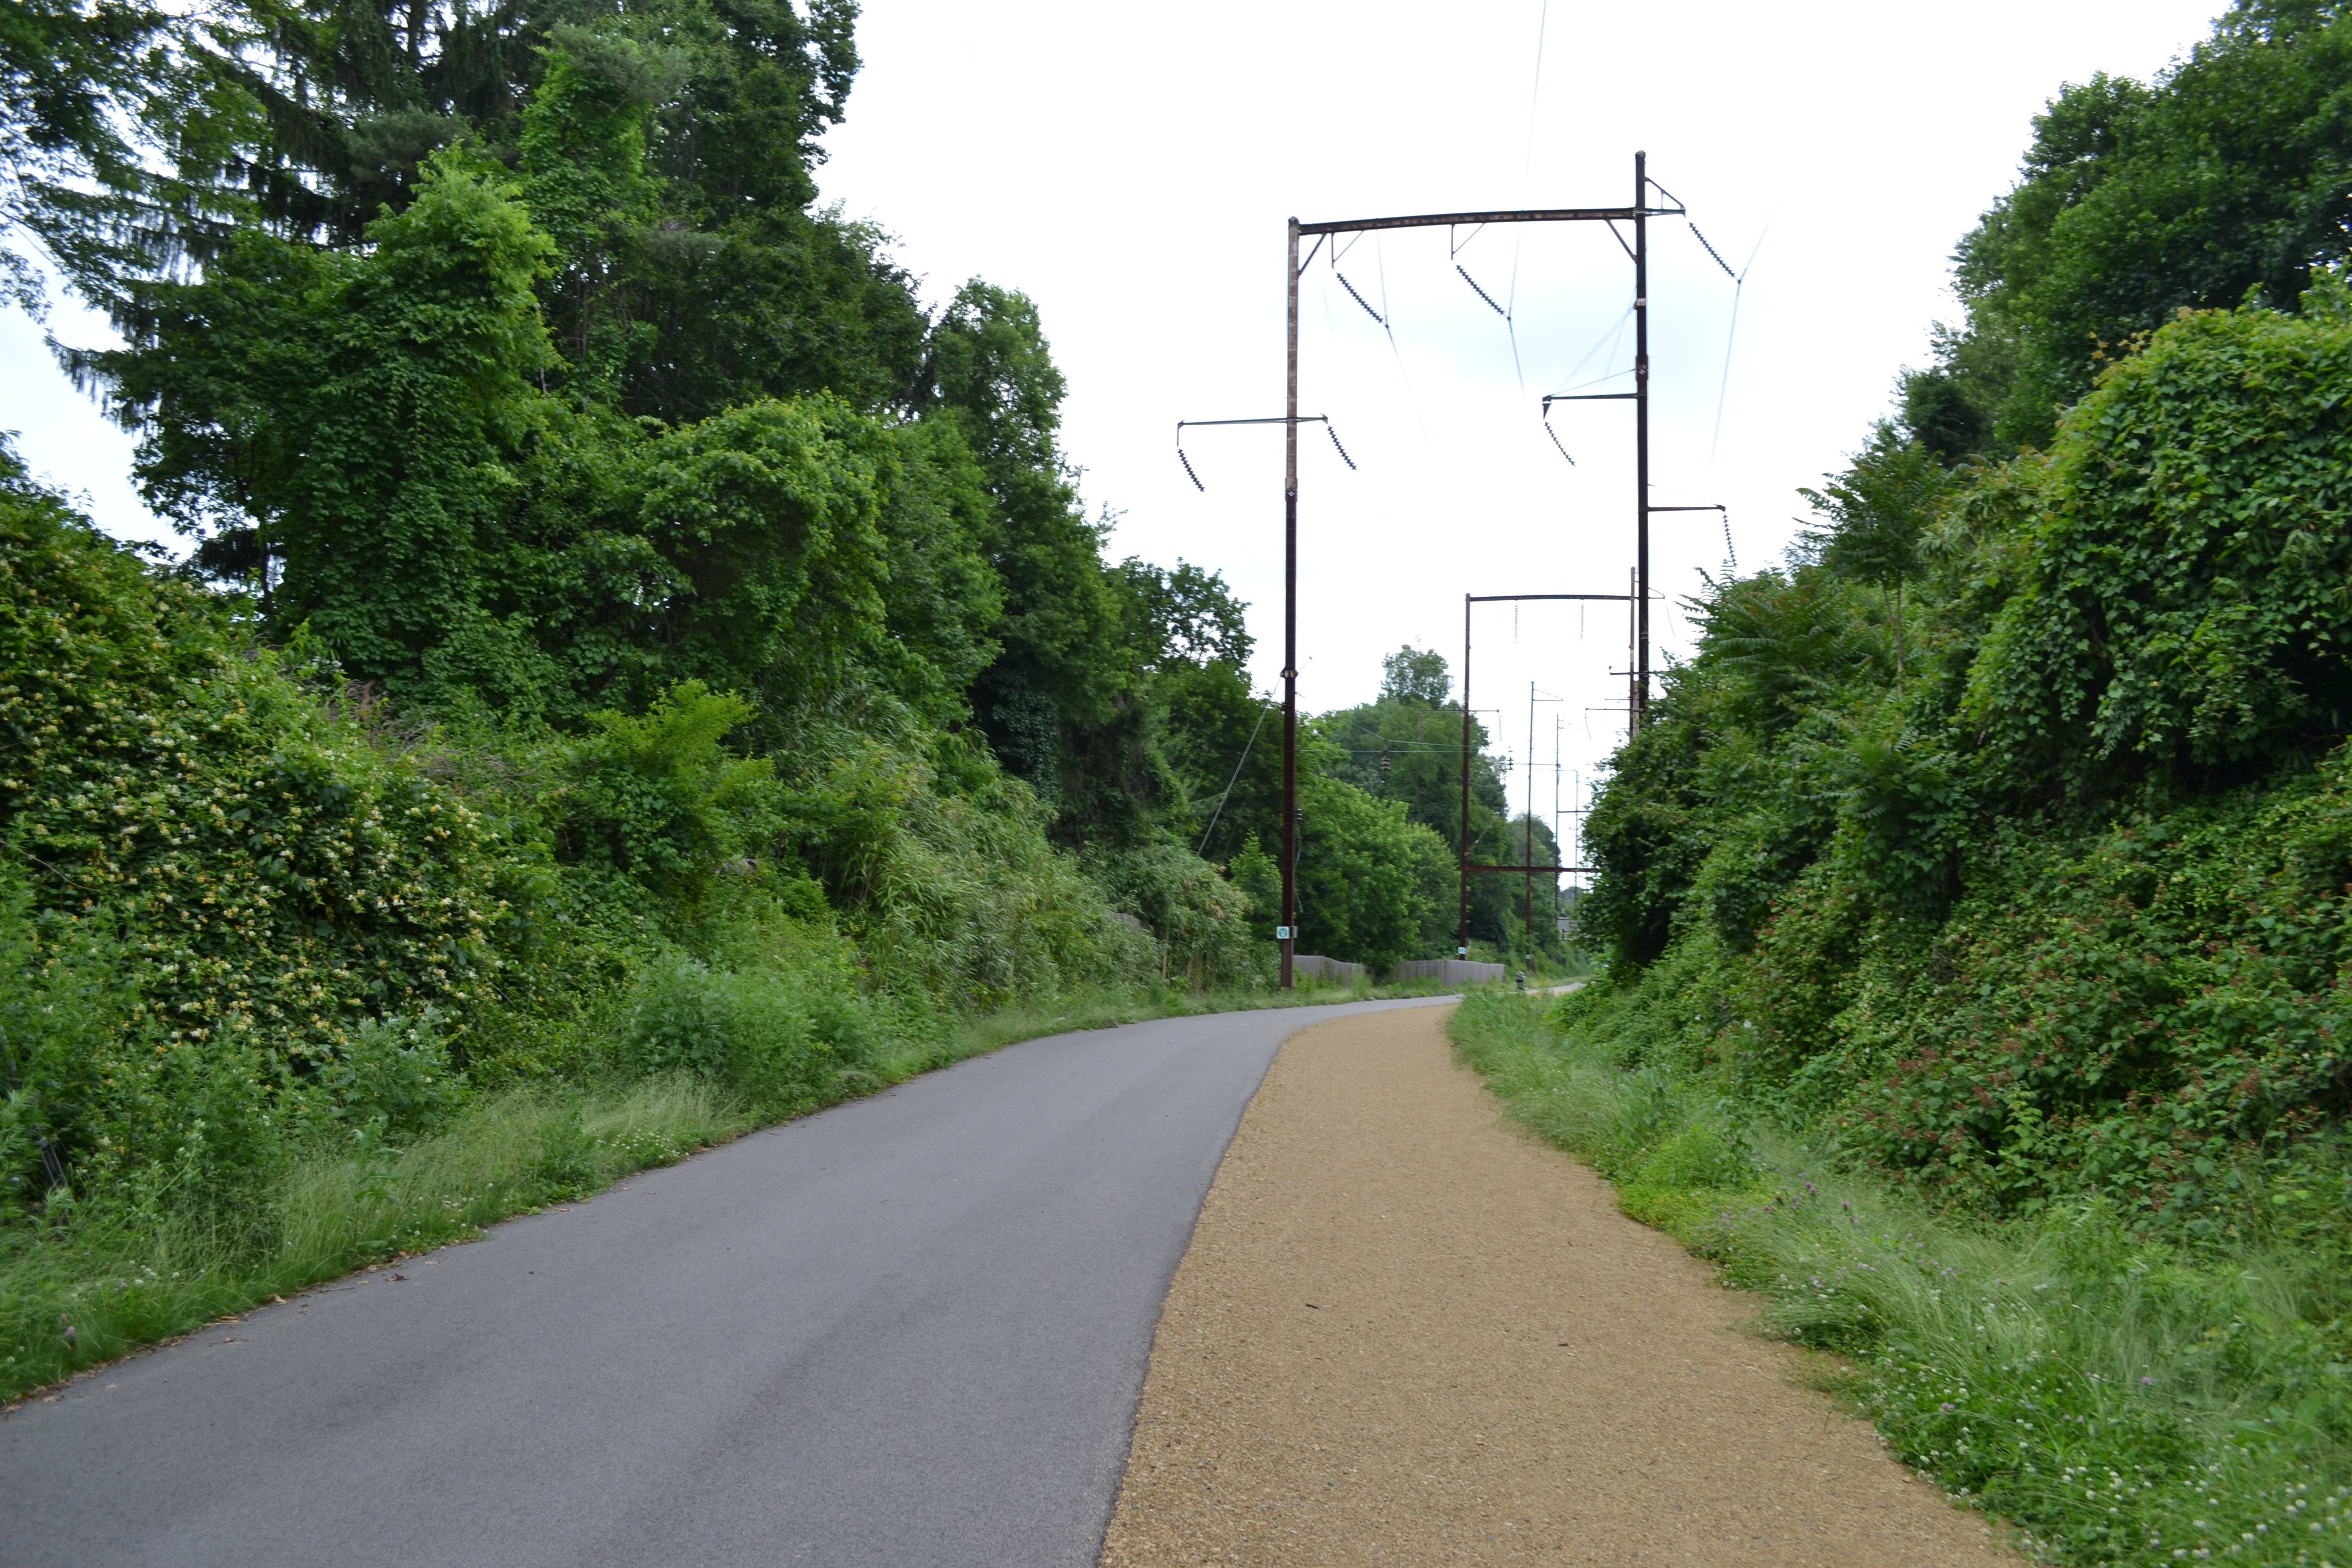 For much of the Cynwyd Heritage Trail, the paved and dirt portions run side by side